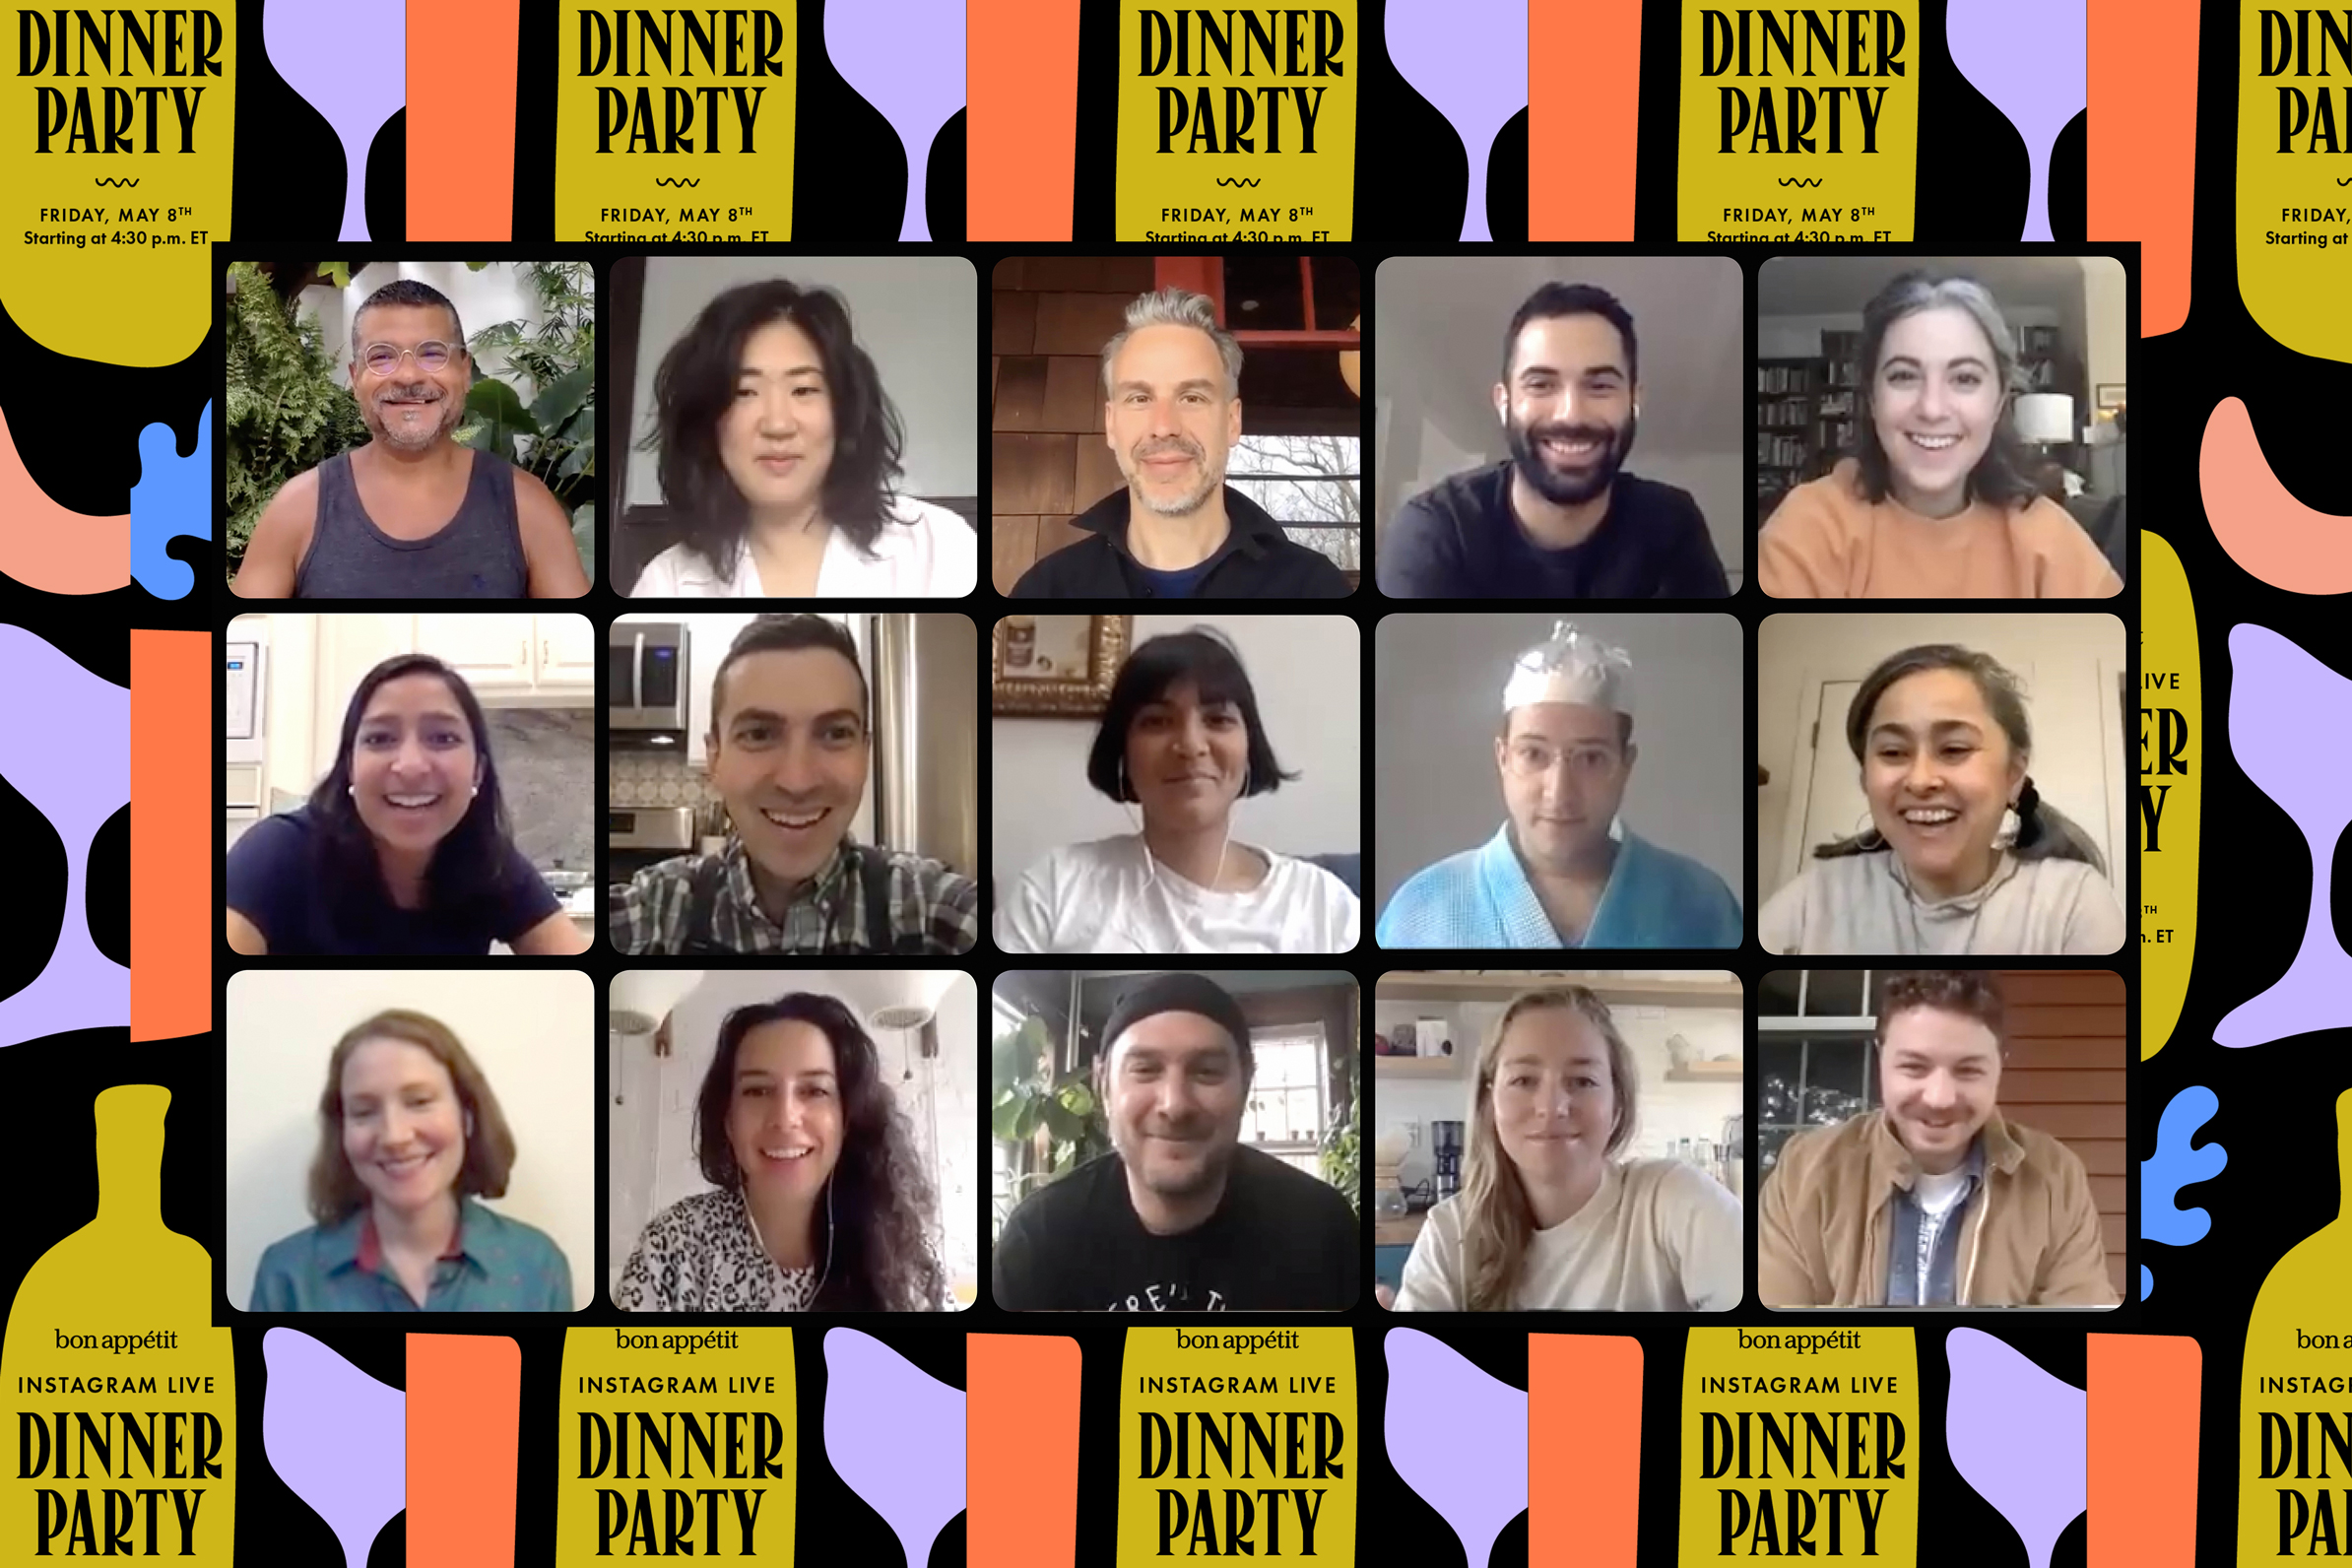 Bon Appétit is hosting a star-studded Instagram Live benefit dinner party (and you're invited)